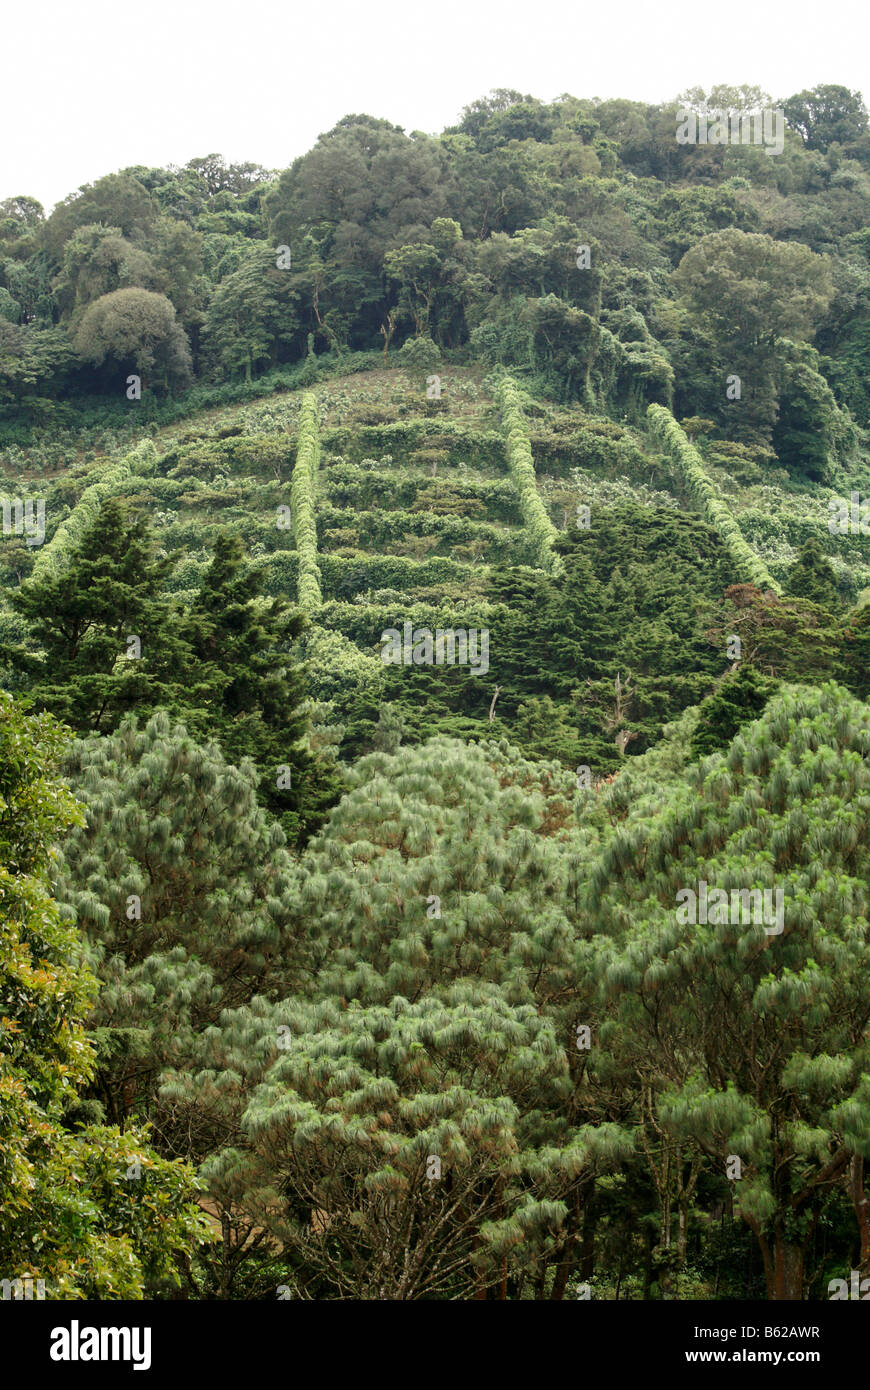 Coffee plantation or finca in the mountains of western El Salvador, Central America - Stock Image